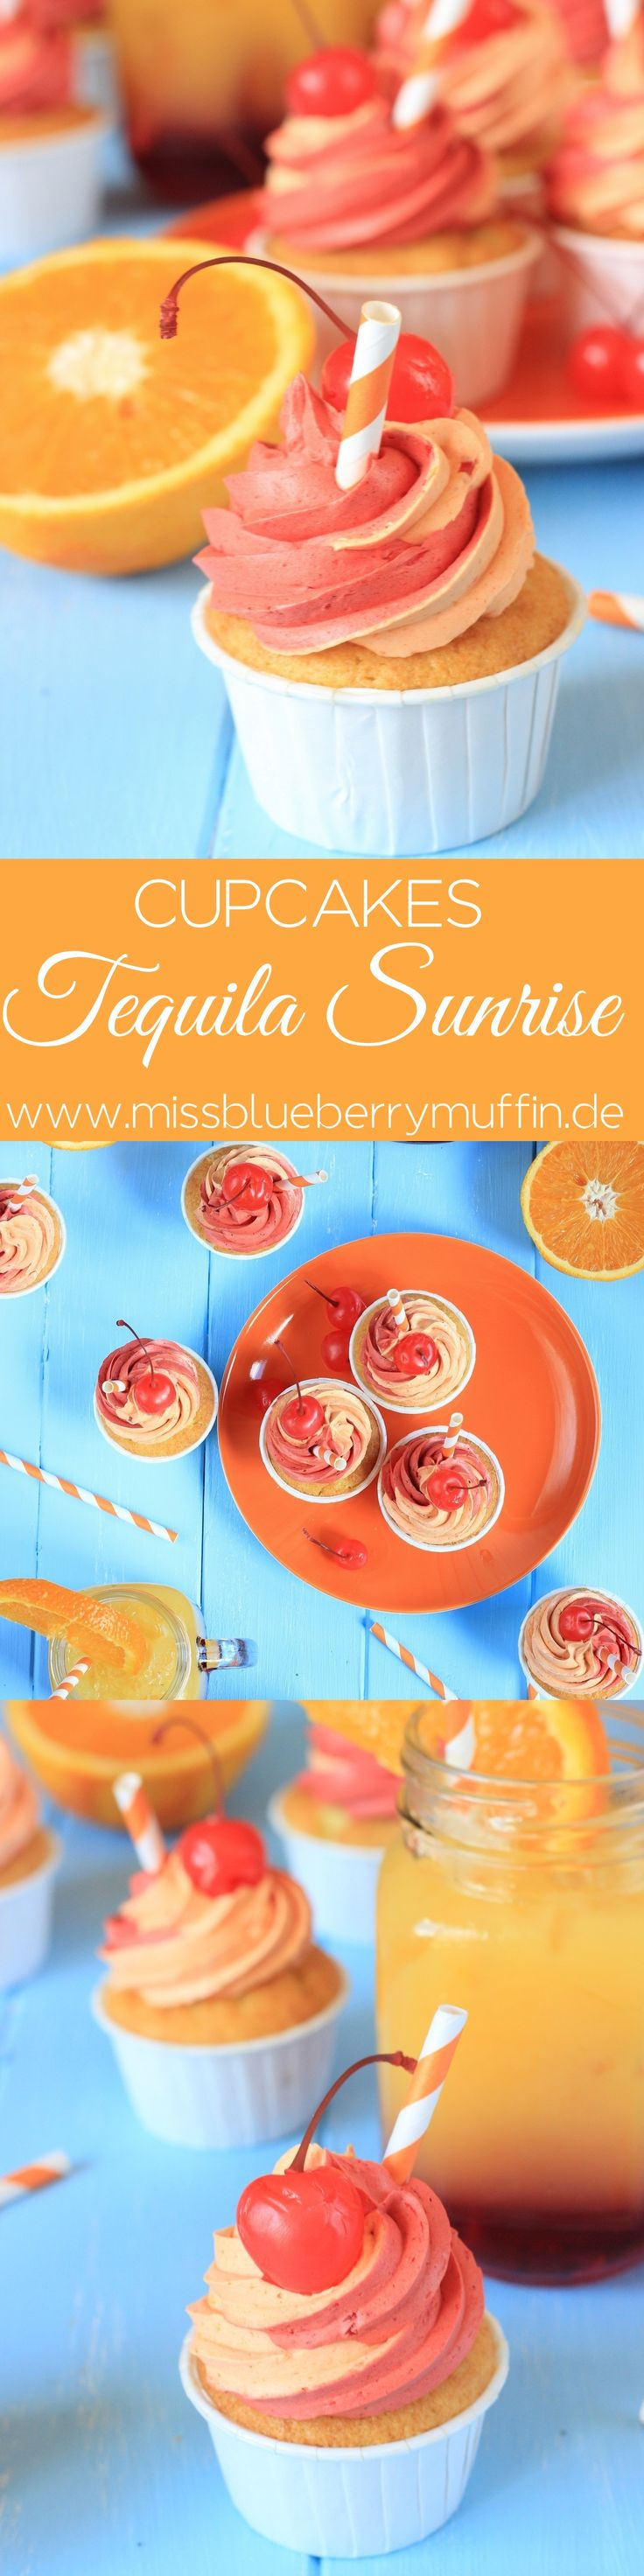 Tequila Sunrise Cupcakes // Cocktail Cupcakes for your summer party <3